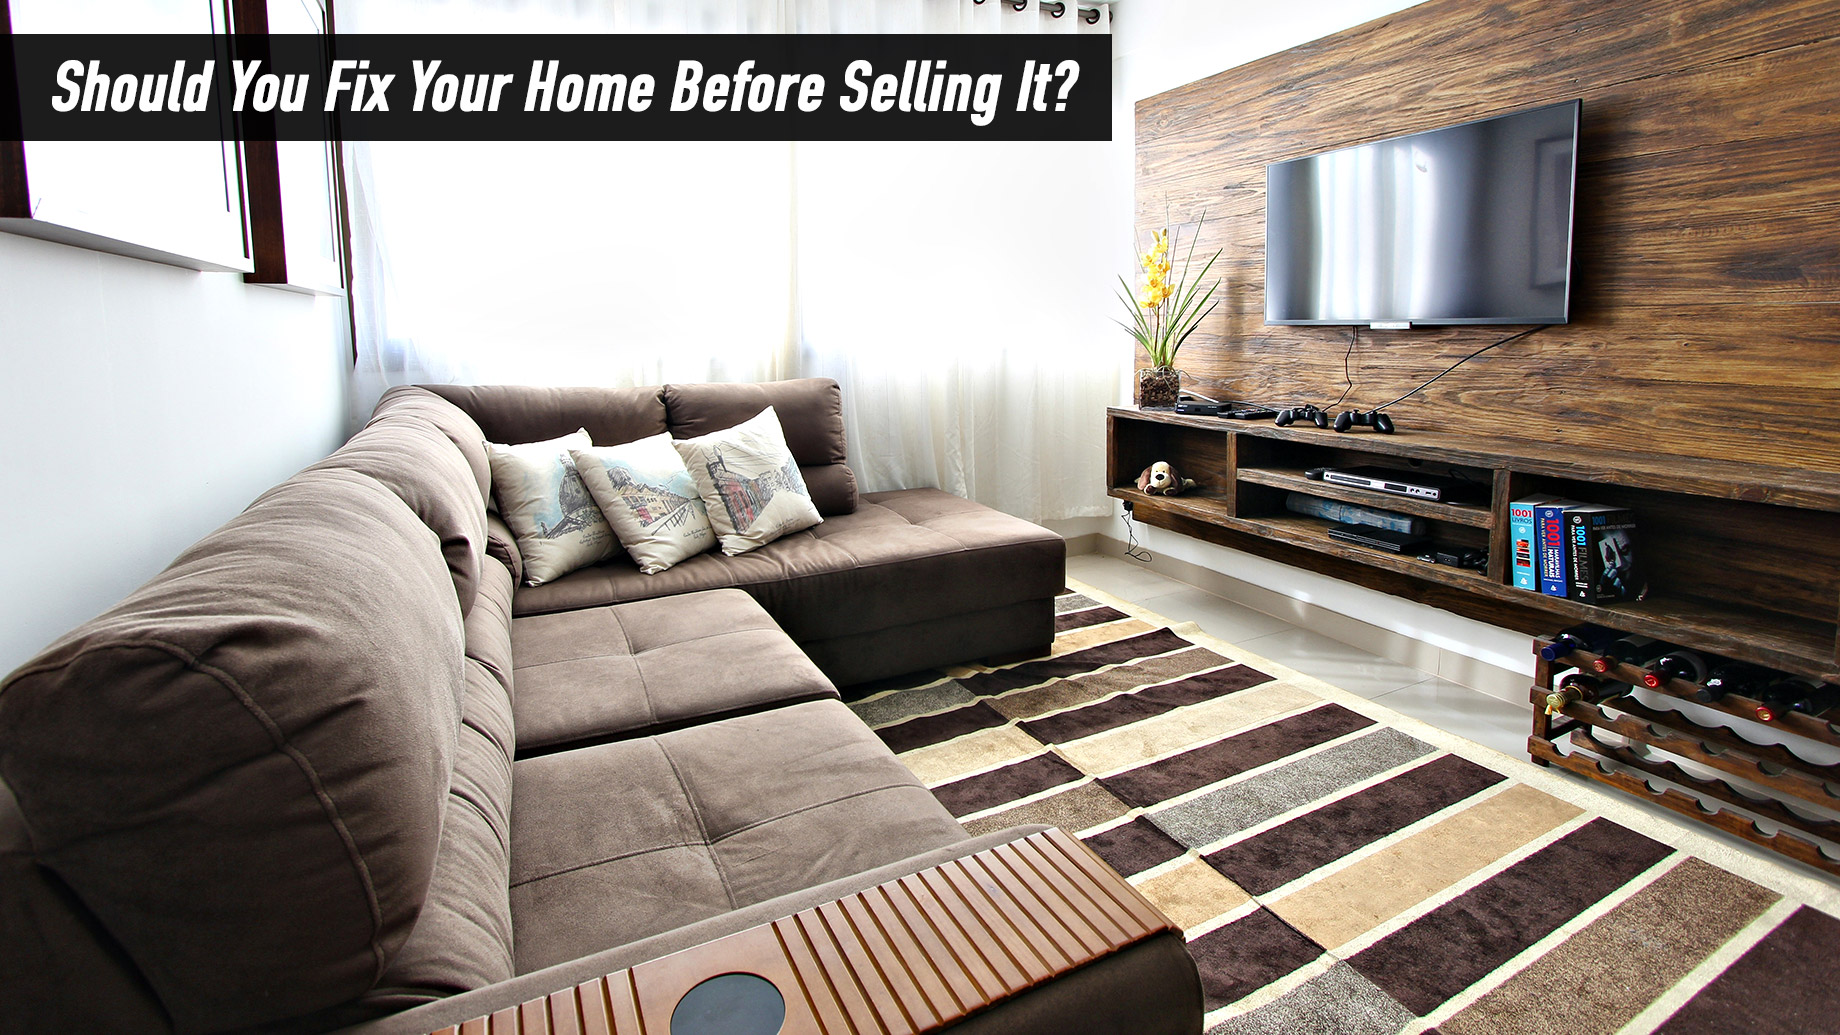 Should You Fix Your Home Before Selling It?